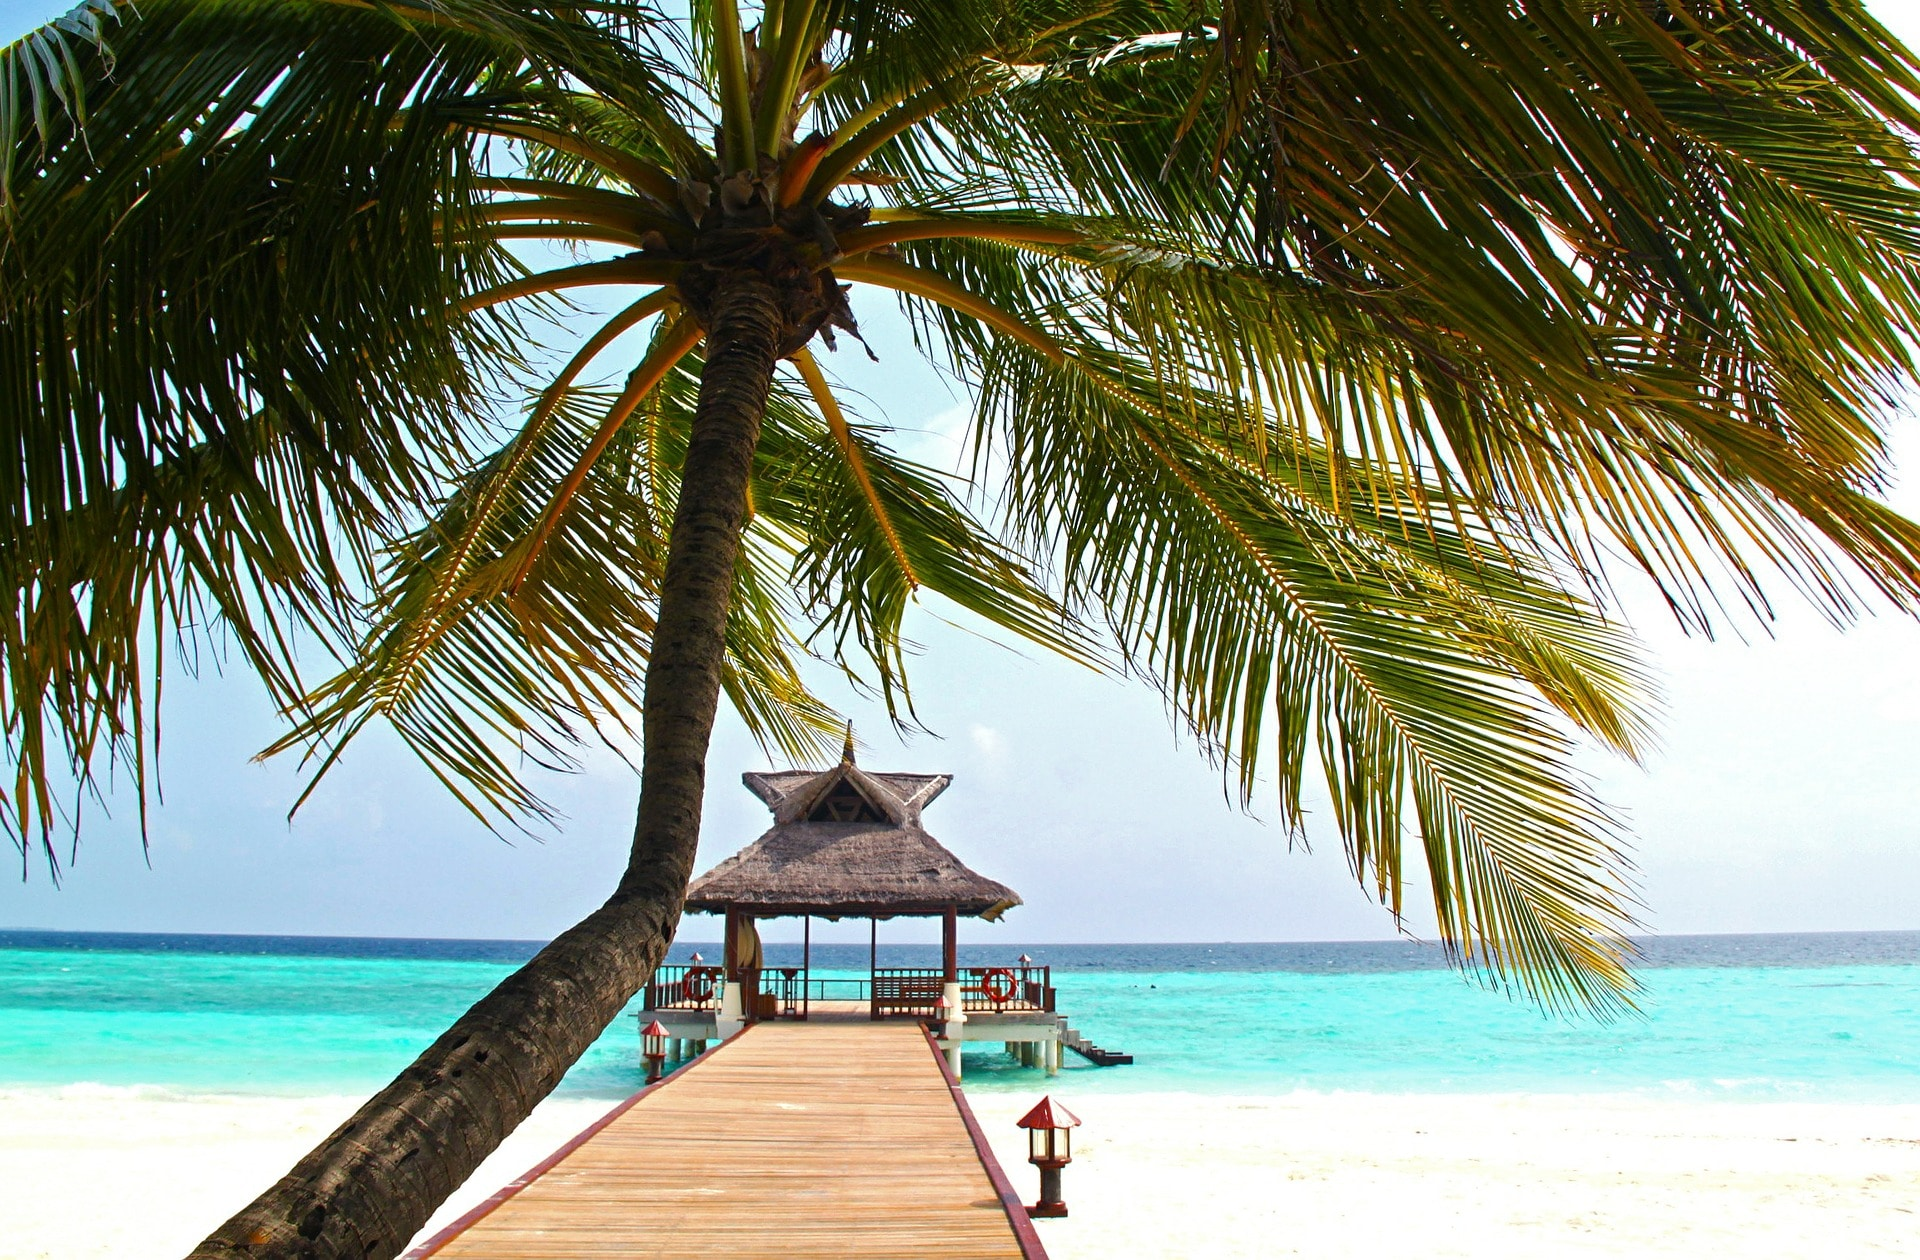 luxury family resorts, kid friendly luxury resorts, luxury family resorts, luxury resorts for kids, best luxury family resorts, best resorts for toddlers, luxury family resorts usa, toddler friendly resorts, best vacations for toddlers, best luxury hotels for kids, luxury family vacation resorts, family resorts usa, best resorts for kids, luxury family camp, luxury resorts family vacations, best luxury resorts, best luxury family resorts caribbean, all inclusive family resorts usa, best caribbean resorts for families, best family resorts in us, best luxury florida resorts for families, luxury colorado family resorts, best luxury all inclusive family resorts, best all inclusive family resorts, luxury family vacations, luxury family resorts caribbean, family friendly luxury resorts, best resorts in the us, best family vacations with toddlers, luxury family vacation ideas, luxury family friendly hotels, best luxury family hotels, luxury family holiday resorts, luxury travel with toddlers, best 5 star all inclusive resorts for families, best luxury resorts in usa, best family beach resorts, best luxury resorts in caribbean for families, 5 star all inclusive resorts for families, top us beach resorts for families, luxury resorts usa, luxury summer family vacation ideas, luxury all inclusive family resorts, best caribbean vacations for families, luxury family resorts united states, 5 star family vacation resorts, luxury family all inclusive, luxury family resorts europe, best family resorts, north carolina family resorts, best family resorts east coast, best family resorts in florida, east coast family resorts, high end resorts, family friendly luxury resorts caribbean, luxury kids, best family resorts in california, kids resorts, best luxury family resorts, family friendly resorts, best family resorts in the world, luxury family vacations, best resorts for kids, best family vacations 2017, best kid friendly resorts, resorts and hotels, best family hotels 2017, kid friendly resorts, luxury resorts family vacations, top family resorts in the world, luxury summer family vacation ideas, family vacation 2017, kid friendly luxury resorts, family friendly luxury resorts, best resorts for toddlers, top family vacations 2017, luxury family resorts usa, best luxury hotels for kids, luxury family vacation resorts, luxury family escapes, luxury vacations with kids, amazing hotels for kids, high end family resorts, best luxury family vacations, hotels for families, luxury family all inclusive, top luxury family resorts, top luxury family vacations, exclusive family resorts, luxury resorts for kids, best kids resorts in the world, amazing family resorts, colorado family resorts, best rooms in the world for kids, luxury family friendly hotels, luxury colorado family resorts, best family vacations in united states 2017, family friendly spa hotels, 5 star family vacation resorts, best resorts for children, travel leisure family club review, east coast family resorts, top family vacation destinations 2017, luxury family resorts colorado, summer vacations for families 2017, best resorts for teens, savannah resorts for families, top us family vacations 2017, ultimate family vacation, top rated family vacations 2017, child friendly spa hotels, best family hotels in the world, family fun resorts, best vacation programs, best family hotels in colorado, great hotels for kids, luxury family resorts, best luxury family resorts, luxury family vacation resorts, luxury family vacations, luxury family resorts florida, luxury family resorts usa, luxury family resorts caribbean, luxury family beach resorts florida, luxury resorts for kids, luxury family vacations florida, south florida family resorts, luxury all inclusive family resorts, luxury family all inclusive, best family beach vacations, best luxury beach resorts in usa, luxury family beach resorts, luxury family beach vacations, luxe family vacations, all inclusive resorts in florida, best family beach vacations in the world, best luxury all inclusive family resorts, best family beach resorts, all inclusive family resorts in florida, best luxury family resorts caribbean, family beach vacations, five star all inclusive family resorts, best beach resorts in usa, best family resorts in california, luxury family vacation ideas, luxury beach resorts, luxury resorts family vacations, luxury beach vacations, 5 star all inclusive resorts for families, family resorts in california, luxury summer family vacation ideas, luxury family resorts united states, high end family resorts caribbean, luxury vacations with kids, all inclusive family beach resorts in florida, best family resorts gulf coast florida, best 5 star all inclusive resorts for families, high end family resorts, best luxury family vacations, all inclusive kid friendly resorts in florida, all inclusive beach resorts in florida, 5 star family vacation resorts, top luxury family resorts, family friendly luxury resorts, top luxury family vacations, 5 star family resorts, best family resorts on the gulf coast of florida, family resorts in southern california, best family resorts in us, family resort, family resorts usa, top family resorts in us, best family resorts, best resorts for kids, luxury family resorts usa, best kid resorts in us, family vacation resorts in usa, family vacation resorts, luxury family resorts, best family friendly resorts in us, family friendly resorts in united states, best kid friendly resorts, best family friendly resorts, best family vacation resorts, east coast family resorts, best kid friendly resorts in us, luxury family hotels, best family friendly resorts in usa, kid friendly resorts in usa, luxury family vacations, luxury family resorts united states, 5 star family hotels, best family resorts east coast, best family vacation resorts in us, top resorts in us for families, best kid friendly resorts usa, top resorts for families in us, 5 star family vacation resorts, luxury family cottages, 5 star family resorts, family friendly resorts united states, best luxury family resorts, family fun resorts, family friendly resorts, top family resorts, best family holiday resorts, top 10 family resorts, luxury family vacation resorts, kids resorts, kid friendly luxury resorts, best family beach resorts in united states, best hotel pools for families, kid friendly resorts, luxury family holiday resorts, five star family resorts, best family friendly hotels, top ten family resorts in usa, family hotel resorts, best family resorts in america, best all inclusive resorts for families 2016, resorts in the united states for families, 5 star kid friendly resorts, luxury family camp, luxury family friendly hotels, 10 best family resorts, family resort vacation ideas, family friendly spa hotels, best child friendly resorts, great resorts for kids, the best family resorts, luxury resorts for kids, luxury resorts family vacations, best family vacation packages in us, top family friendly resorts, amazing family resorts, family resort ideas, best family hotels in usa, luxury summer family vacation ideas, best resorts for children, top family vacation resorts, luxury family vacation ideas, largest resorts in the us, great american resorts, family spa resort, family spa hotels, luxury hotels with kids clubs, kid friendly resorts east coast, best luxury hotels for kids, hotels with kid pools, family resort packages, family resort hotels, family friendly resorts east coast, best kid friendly hotels, best vacation hotels, family friendly luxury resorts, best family resorts southeast, 5 star child friendly hotels, exclusive family resorts, resorts with kids clubs, kid friendly spa resorts, top ten family resorts, luxury family, rosewood kids, 5 star family resorts, luxury family hotels caribbean, 5 star family vacation resorts, best luxury family resorts caribbean, luxury hotels with kids clubs, luxury family resorts usa, luxury resorts for kids, high end family resorts caribbean, luxury family vacation resorts, best luxury family resorts, luxury family resorts caribbean, luxury family vacations, luxury family resorts, ultra luxury hotels, ultra luxury resorts, ultra all inclusive holidays, luxury resort brand, luxury asian hotel chains, luxury resort companies, luxury hotel brands, luxury hotel chains, global luxury hotel brands, most luxurious hotels in the world, high end hotel chains, luxury hotel brands list, top hotel brands, luxury resort brand, best hotel brands, best hotel chains in the world, most luxurious hotel chains, top 10 luxury hotels in the world, luxury hotel groups list, luxury asian hotel chains, luxury hotel brands in the world, luxury hotel groups, best luxury hotel brands, top 10 luxury hotel brands in the world, 5 star hotel brands, top luxury hotel brands in the world, list of luxury hotels, most luxurous hotel chains in the world, top 10 luxury hotel chains, world no 1 luxury hotel, best hotel chains in the world 2017, top luxury hotel chains in the world, top 5 hotel brands in the world, 5 star hotels in usa, 5 star resorts in usa, 5 star resorts, best resorts in the us, best resorts in usa, us resorts, best hotels in usa, five star resorts, luxury resorts usa, luxury hotels usa, 5 star luxury hotels, five star resorts in usa, top reorts in the us, five star hotels in usa, best luxury hotels in usa, luxury spa hotels, best 5 star hotels in usa, best resorts in america, best luxury beach resorts in usa, 5 star luxury resorts, best luxury resorts in usa, luxury resorts nited states, top hotels in the us, luxury beach resorts usa, exclusive hotels, 5 star spa, 5 star boutique hotels, best boutique hotels in us, most luxurious hotels in the us, luxury resorts east coast, top resorts in usa, top luxury resorts in the us, top luxury hotels in the us, luxury spa resorts usa, list of 5 star hotels in usa, top 10 resorts in the us, resort five star, luxury 5, best resorts in usa 2017, top hotels in usa, 5 star spa hotels, five star luxury resorts, nicest hotels in america, top luxury hotels in america, best resorts in north america, 5 star beach resorts east coast, luxury vacations usa, best resort hotels in us, five star hotels usa, 5 star hotels south coast, 5 star country hotels, spa resorts in usa, best hotels on the east coast, luxury beach resorts east coast, best spas in the united states 2014, top 10 hotels in the us, top 10 best hotels in usa, resorts in usa, best east coast resorts, best boutique hotels, great resorts in the us, best spas in the us, johansens hotels, independent hotels in the us, best luxury spa resorts in usa, nice resorts in usa, nicest hotels in the us, luxury beach resorts united states, most popular hotels in usa, luxury resorts east coast usa, fancy hotels, five star luxury hotel, most expensive hotel in america, luxury hotels in the south east, spa usa, luxury hotels east coast, 5 star deluxe hotels, top resorts in america, new hotel openings 2017, luxury hotel openings 2017, new hotels 2017, best new hotels 2017, new hotels in turkey 2017, new hotels in florida 2017, upcoming hotels in sri lanka 2017, new hotels ibiza 2017, new hotels in malaysia 2017, new bangkok hotel 2017, ultra luxury hotels, ritz carlton openings, newly opened hotels in sri lanka, luxury resort brand, beatiful hotels, new hotels in london 2017